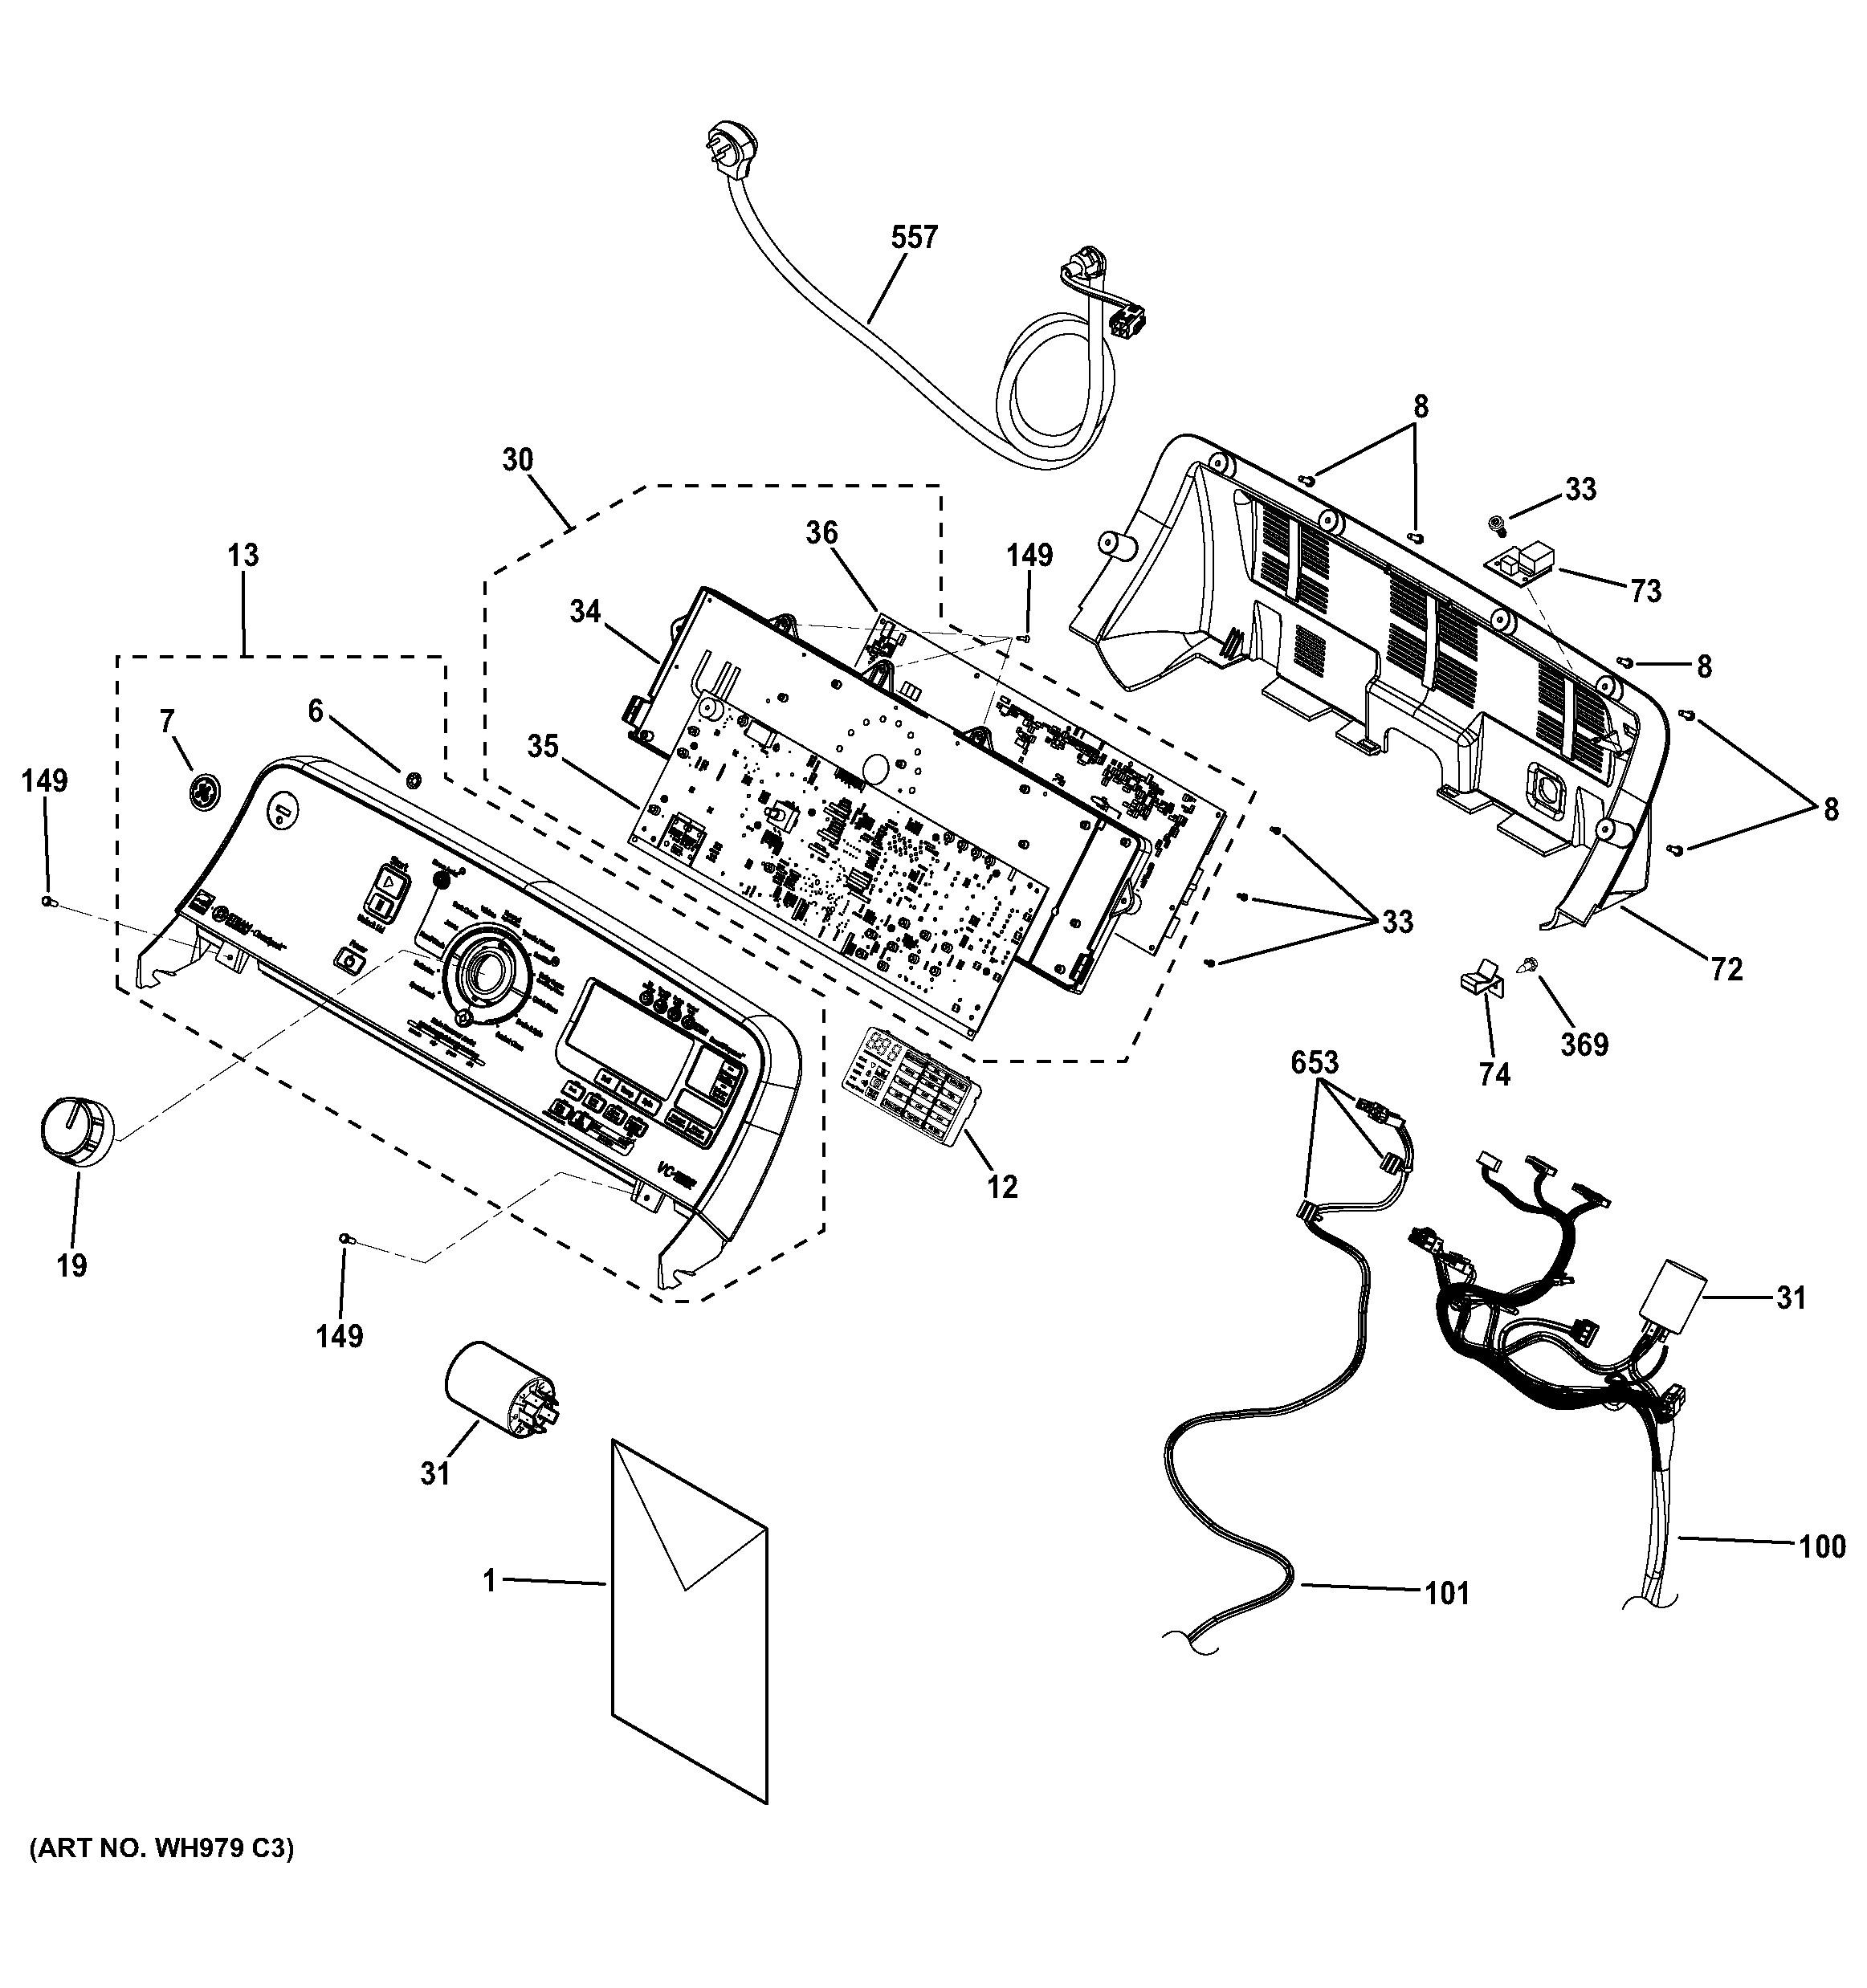 Ge Microwave Parts Diagram Ge Model Gtwn7450d0ww Residential Washers Genuine Parts Of Ge Microwave Parts Diagram